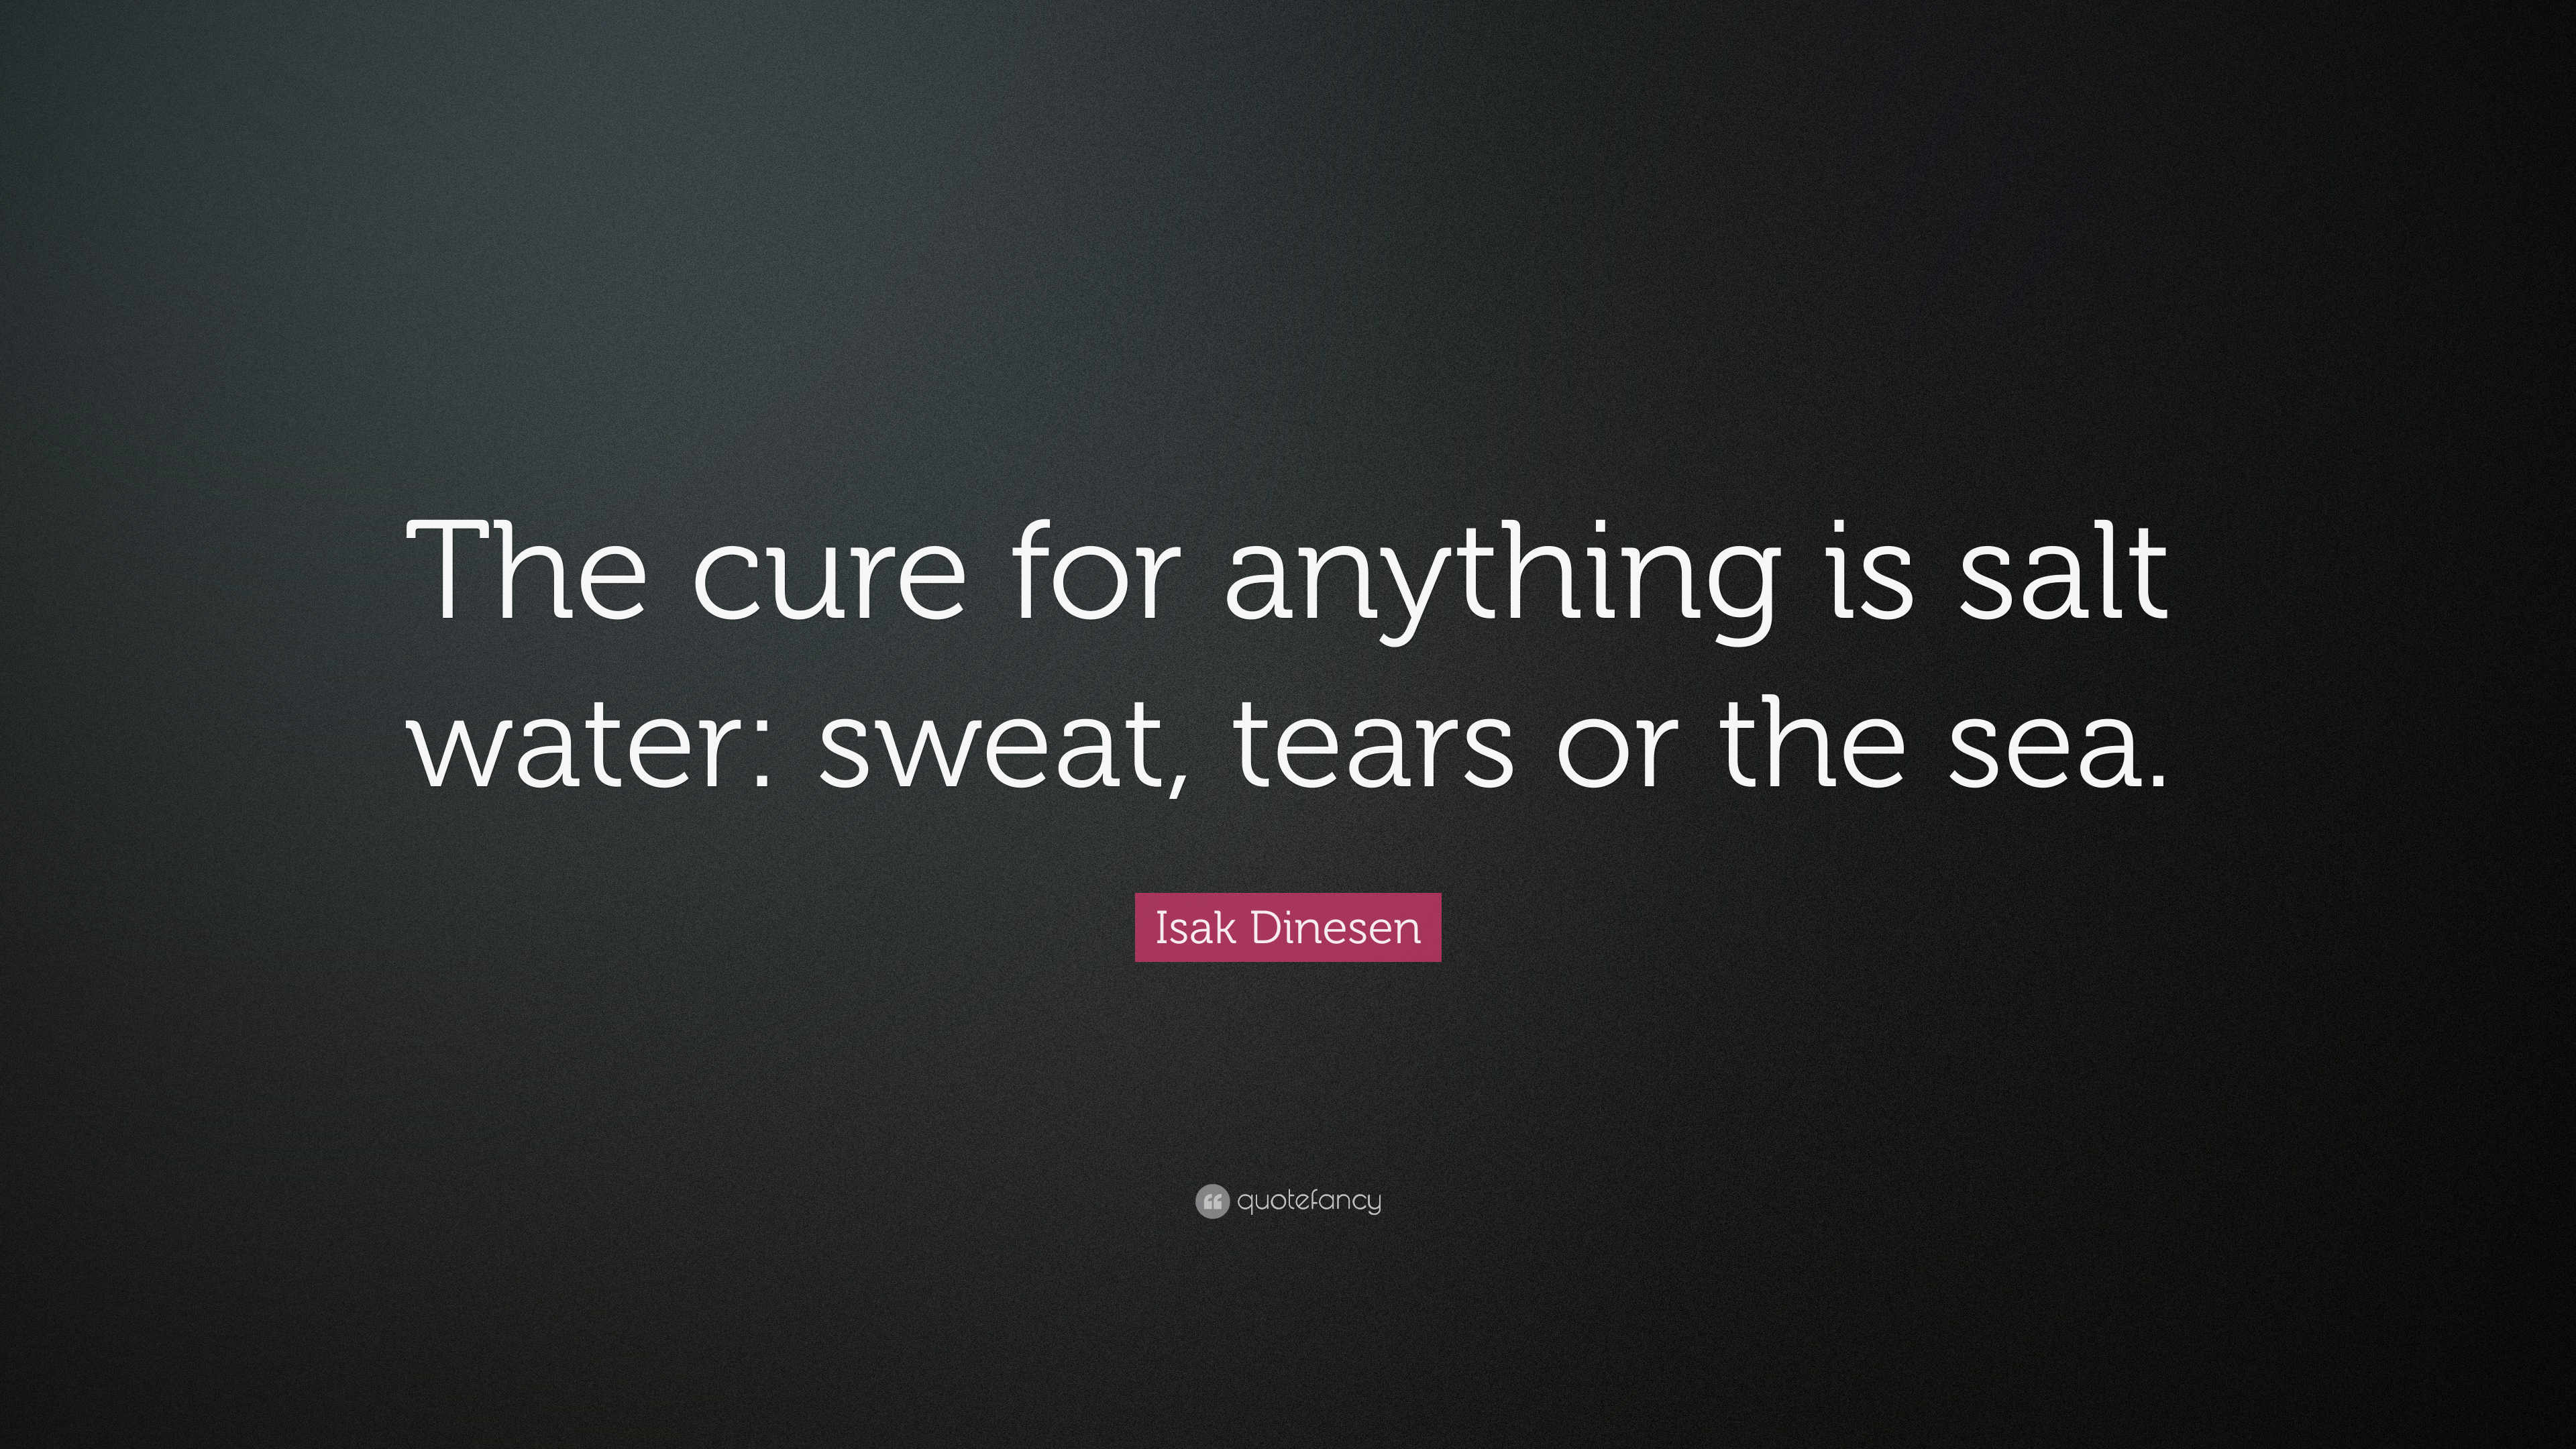 """Isak Dinesen Quote """"The cure for anything is salt water sweat"""